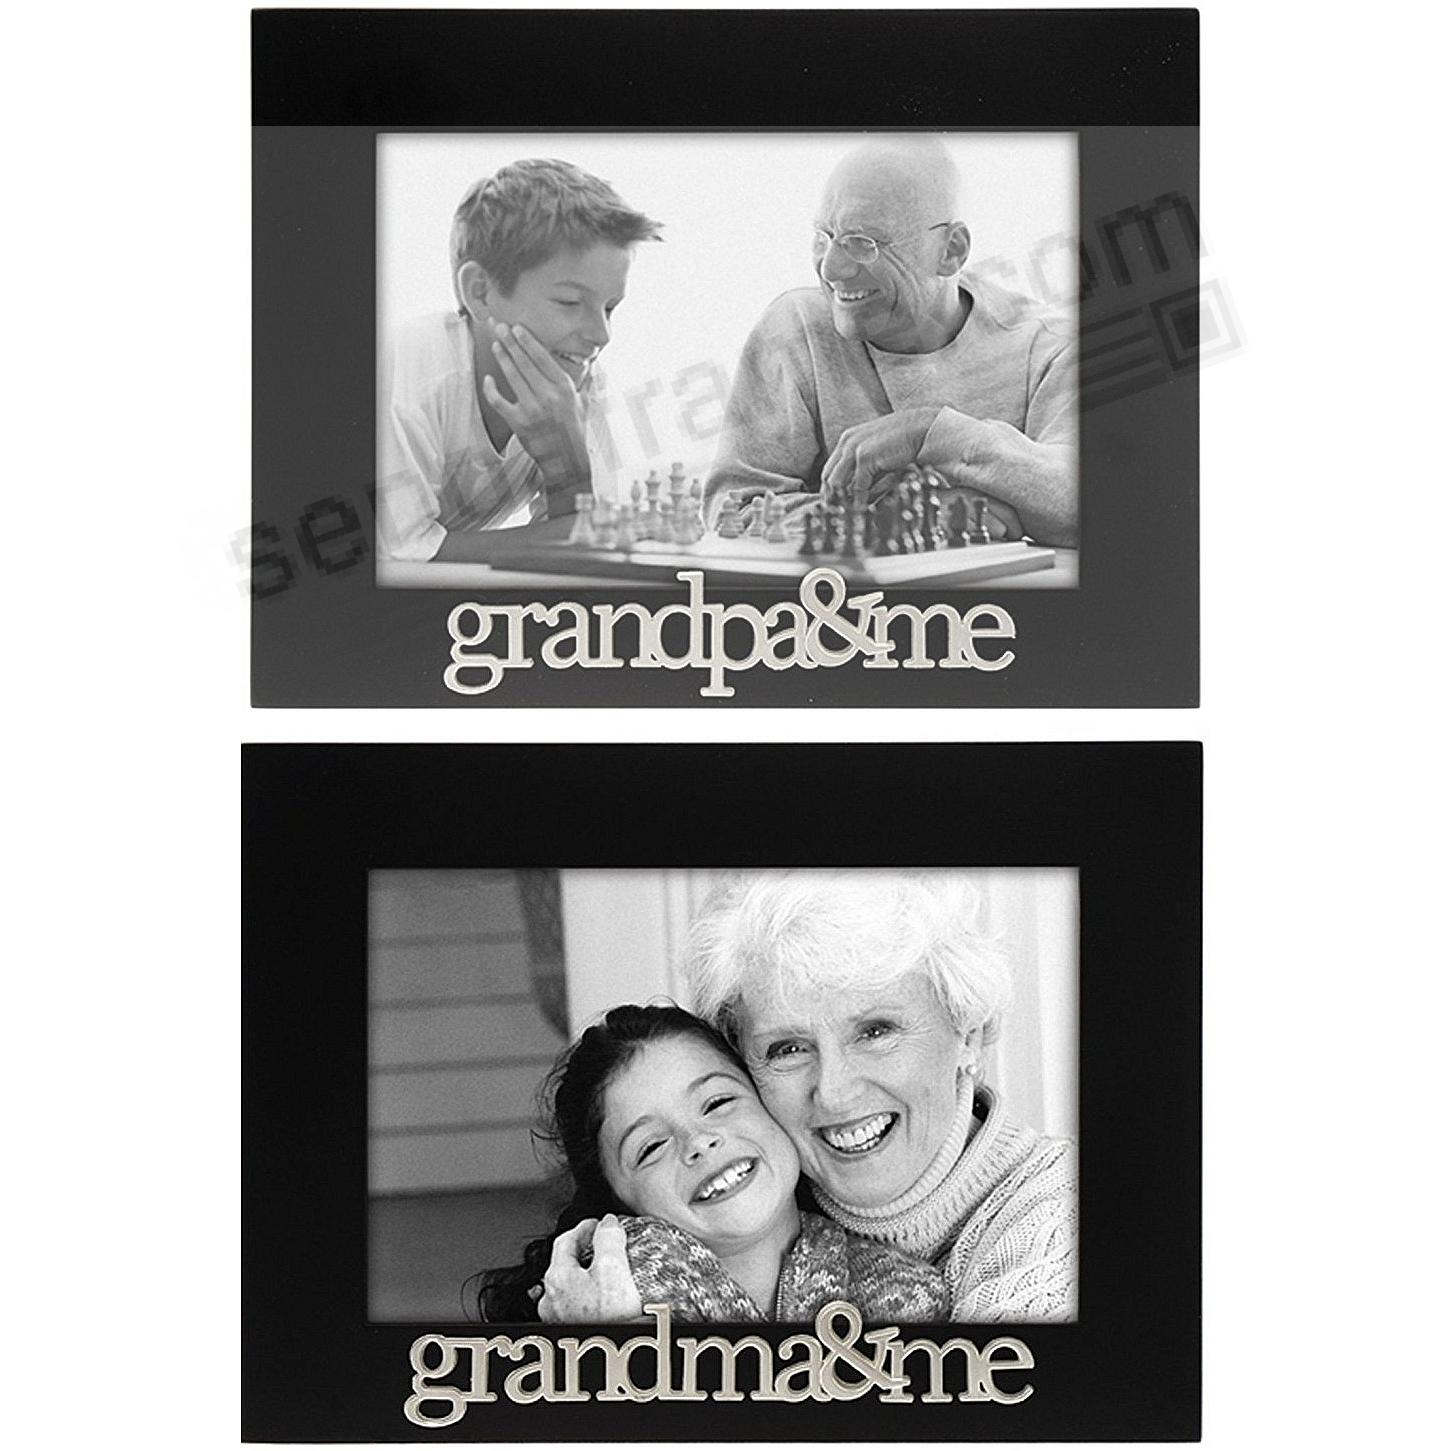 GRANDPA + ME / GRANDMA + ME Back frames (2) - Picture Frames, Photo ...